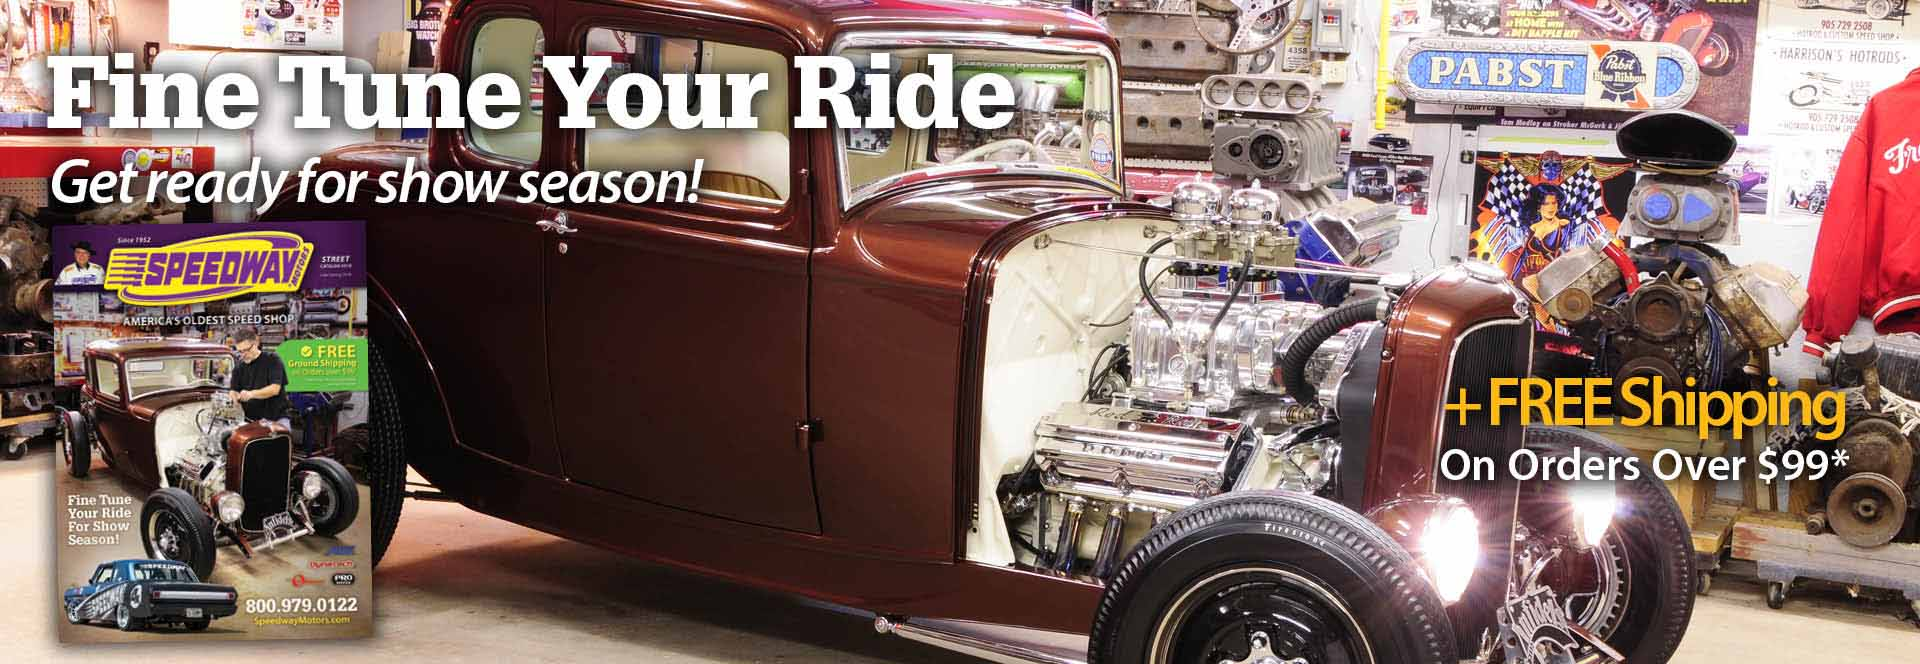 Speedway Motors offers promo codes often. On average, Speedway Motors offers 25 codes or coupons per month. Check this page often, or follow Speedway Motors (hit the follow button up top) to keep updated on their latest discount codes. Check for Speedway Motors' promo code exclusions/5(10).